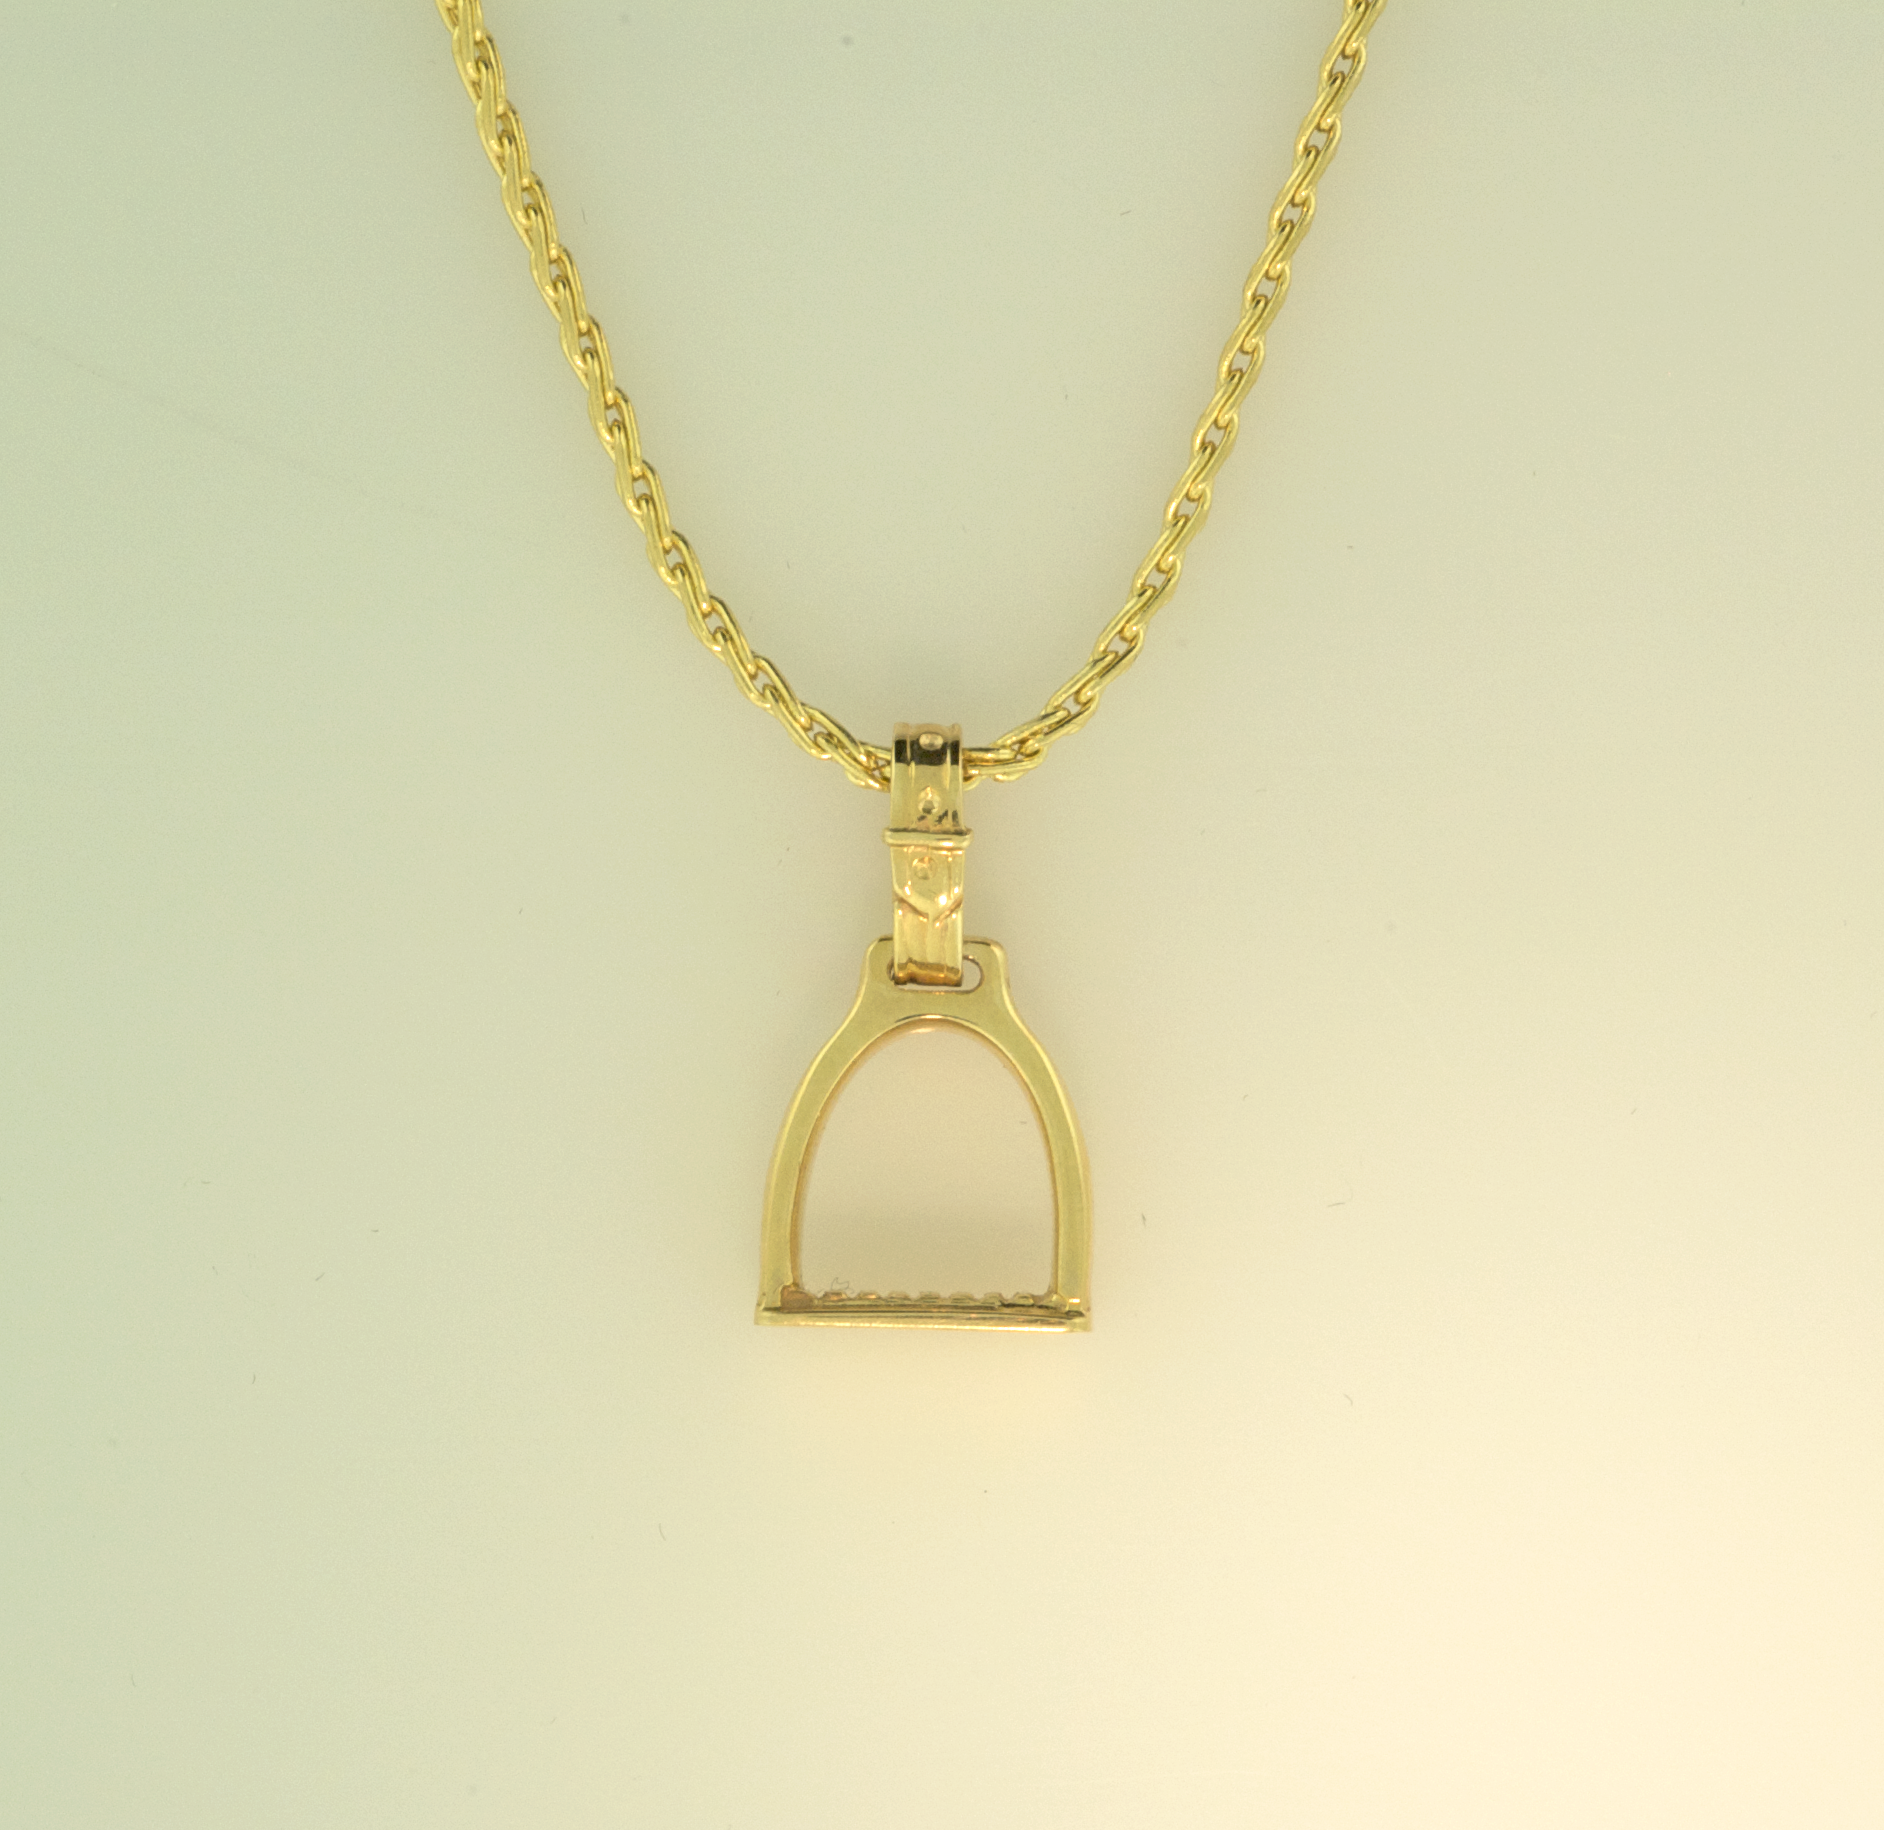 Equestrian large stirrup pendant equestrian signature collections 14kt yellow gold large stirrup pendant on 14kt yellow gold chain mozeypictures Choice Image